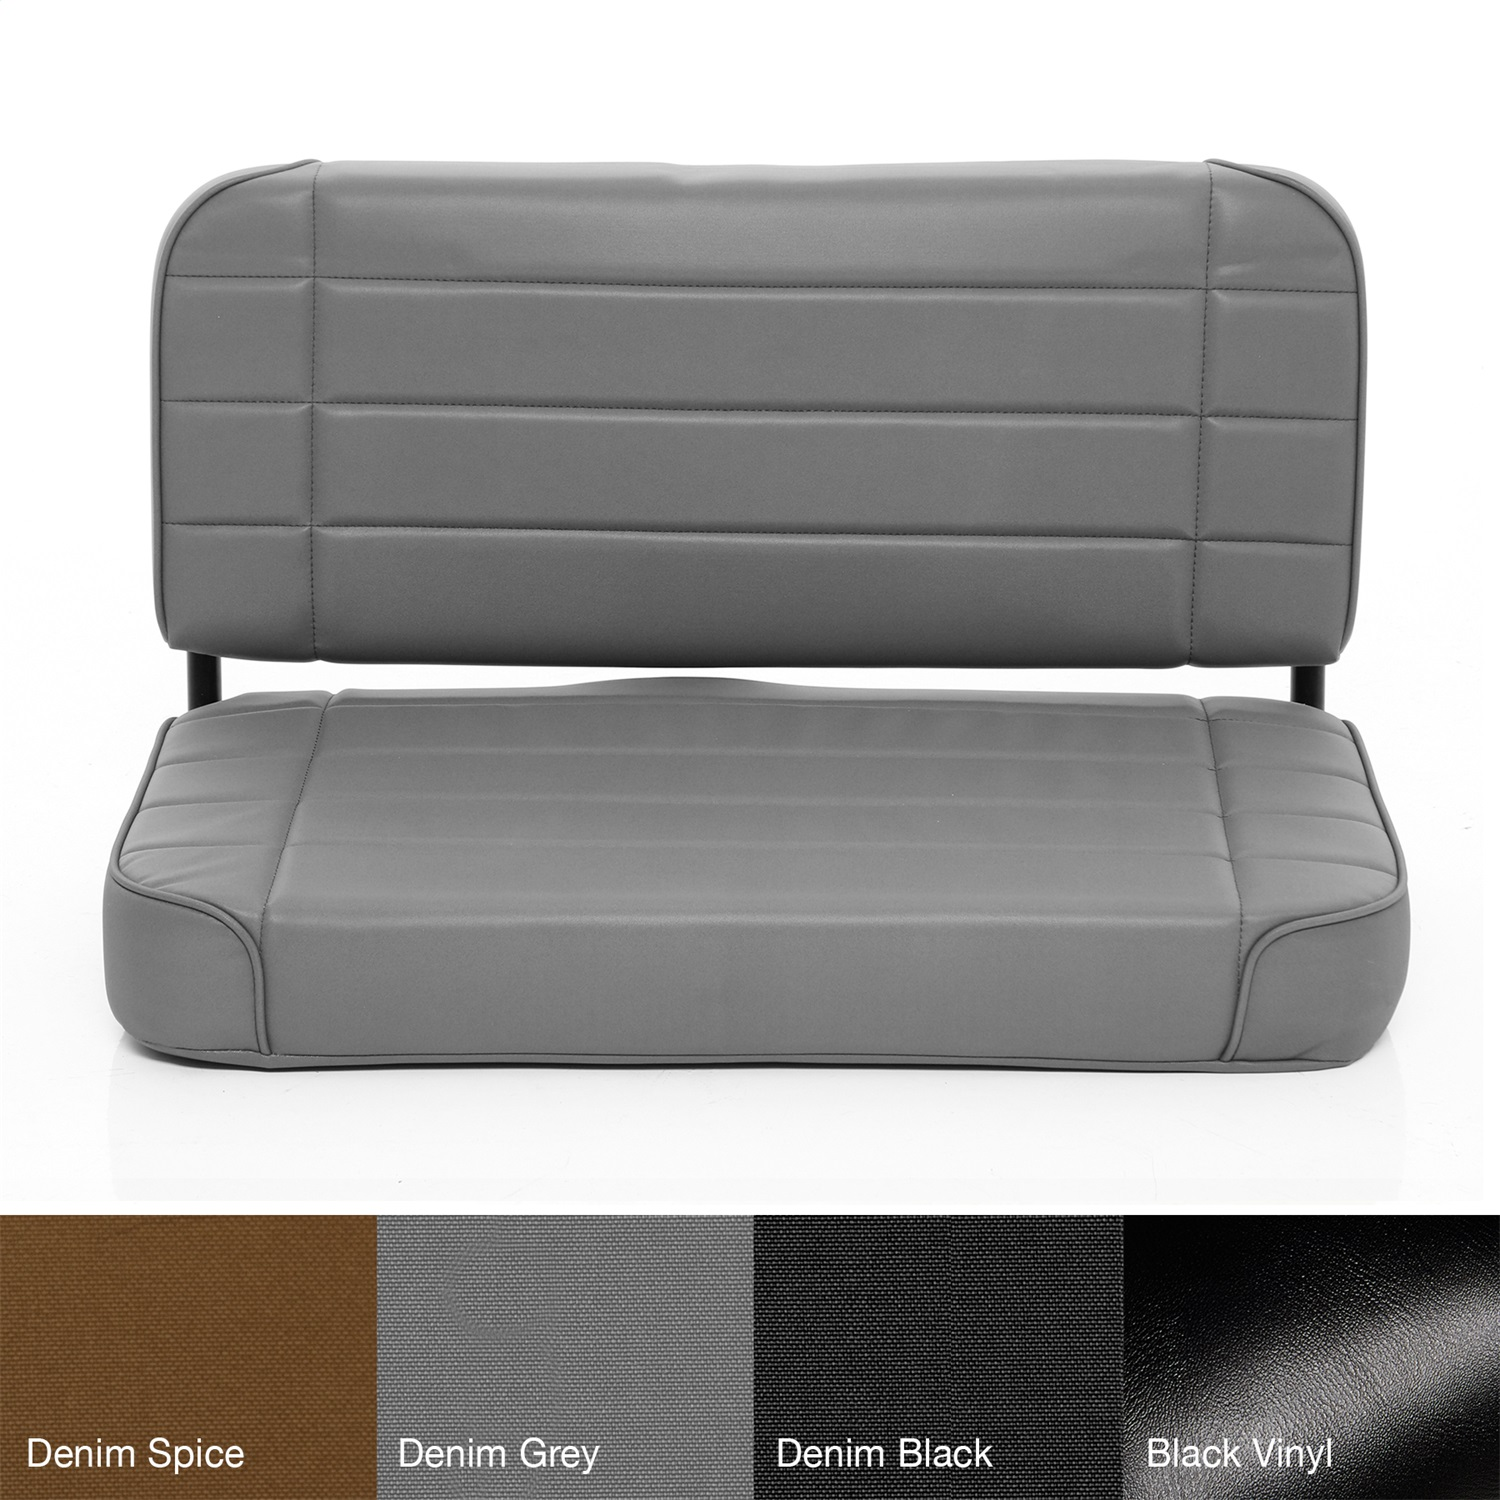 Smittybilt Standard Rear Seat Jeep Wrangler Cj7 Scrambler Cj5 Cj6 Willys Sixity Sells The Best Name Brand Products And Accessories For Your Vehicle